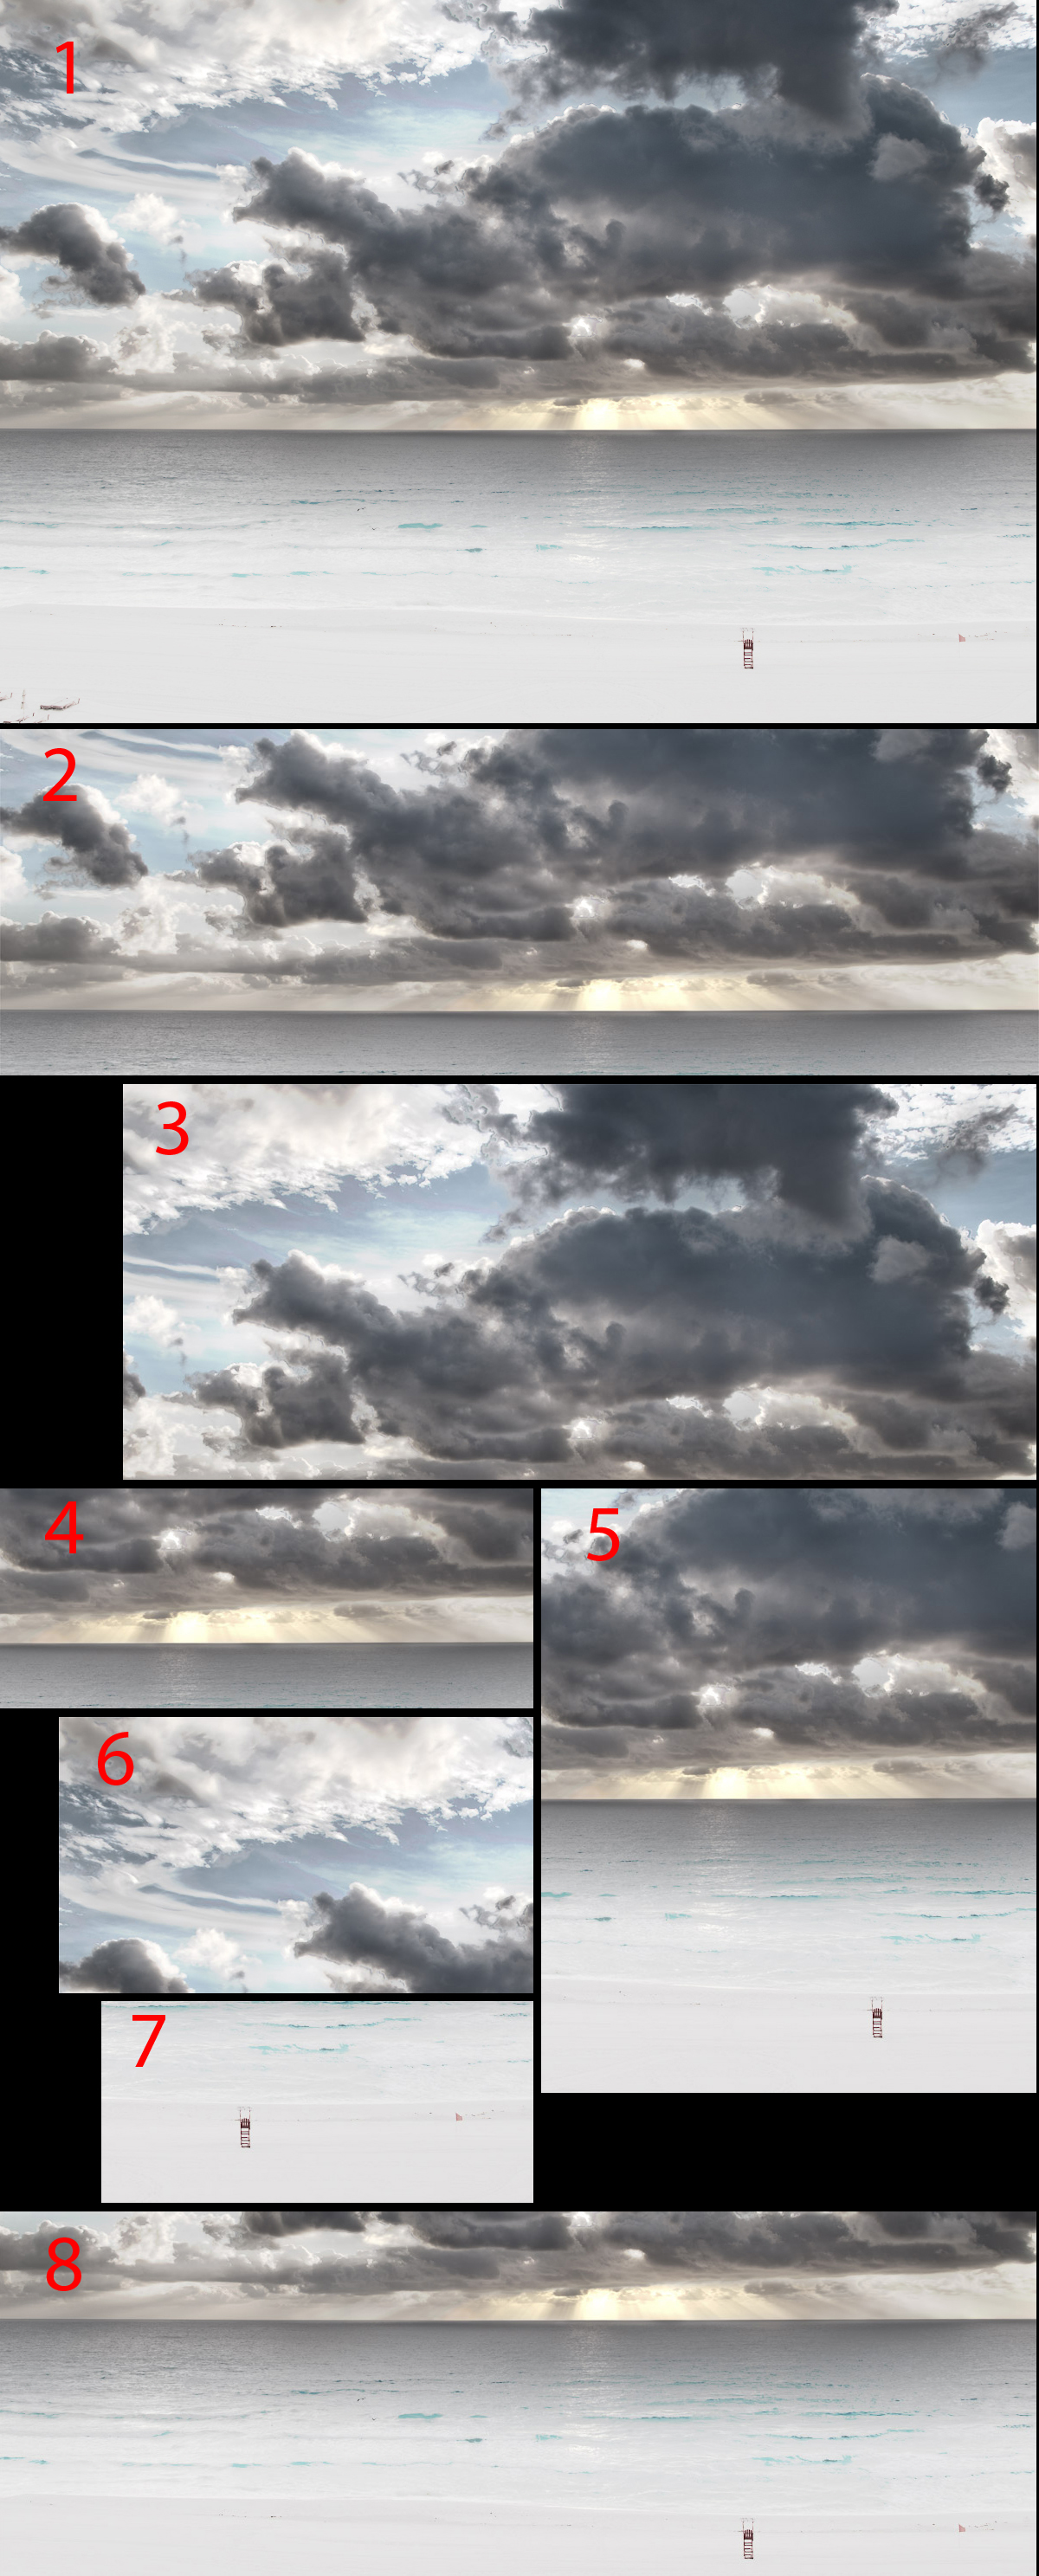 Examples of different cropping decisions and the impact on the final image.